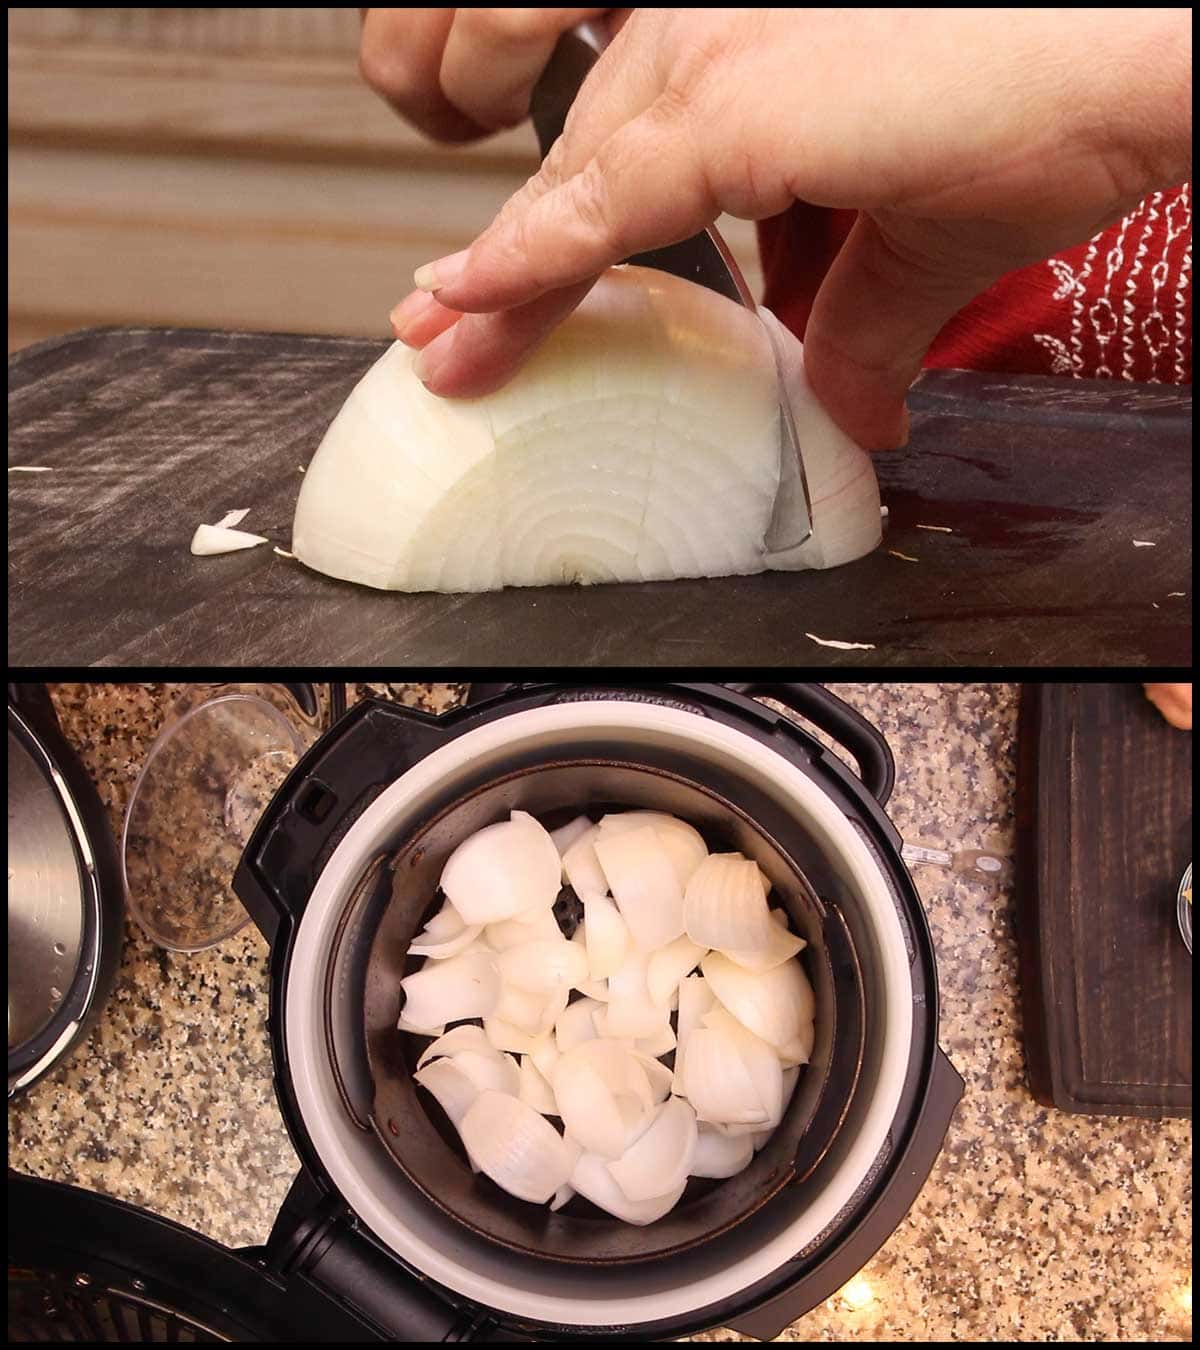 cutting the onion and putting it in the basket